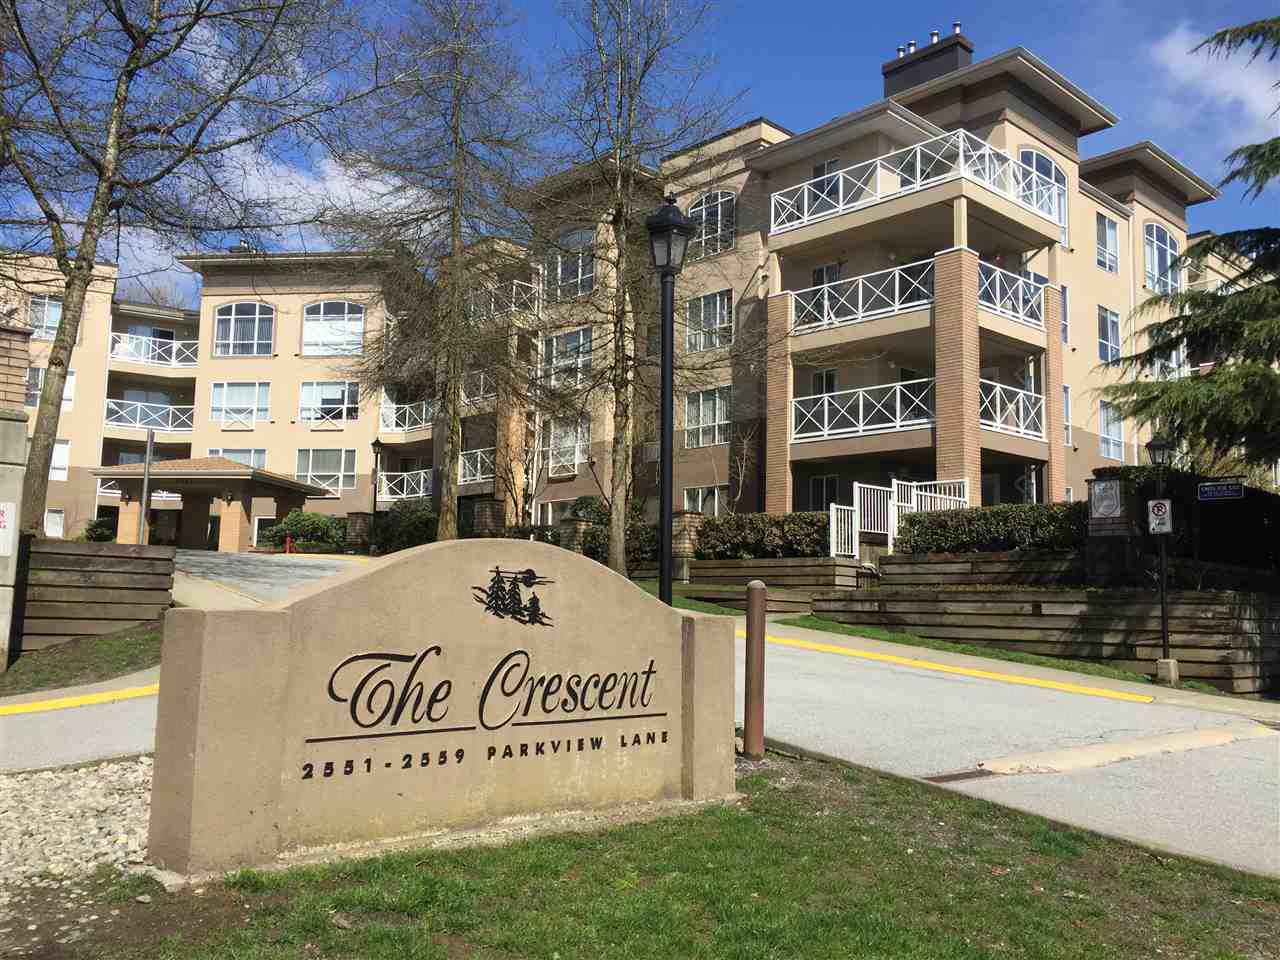 "Main Photo: 216 2559 PARKVIEW Lane in Port Coquitlam: Central Pt Coquitlam Condo for sale in ""THE CRESCENT"" : MLS®# R2156465"